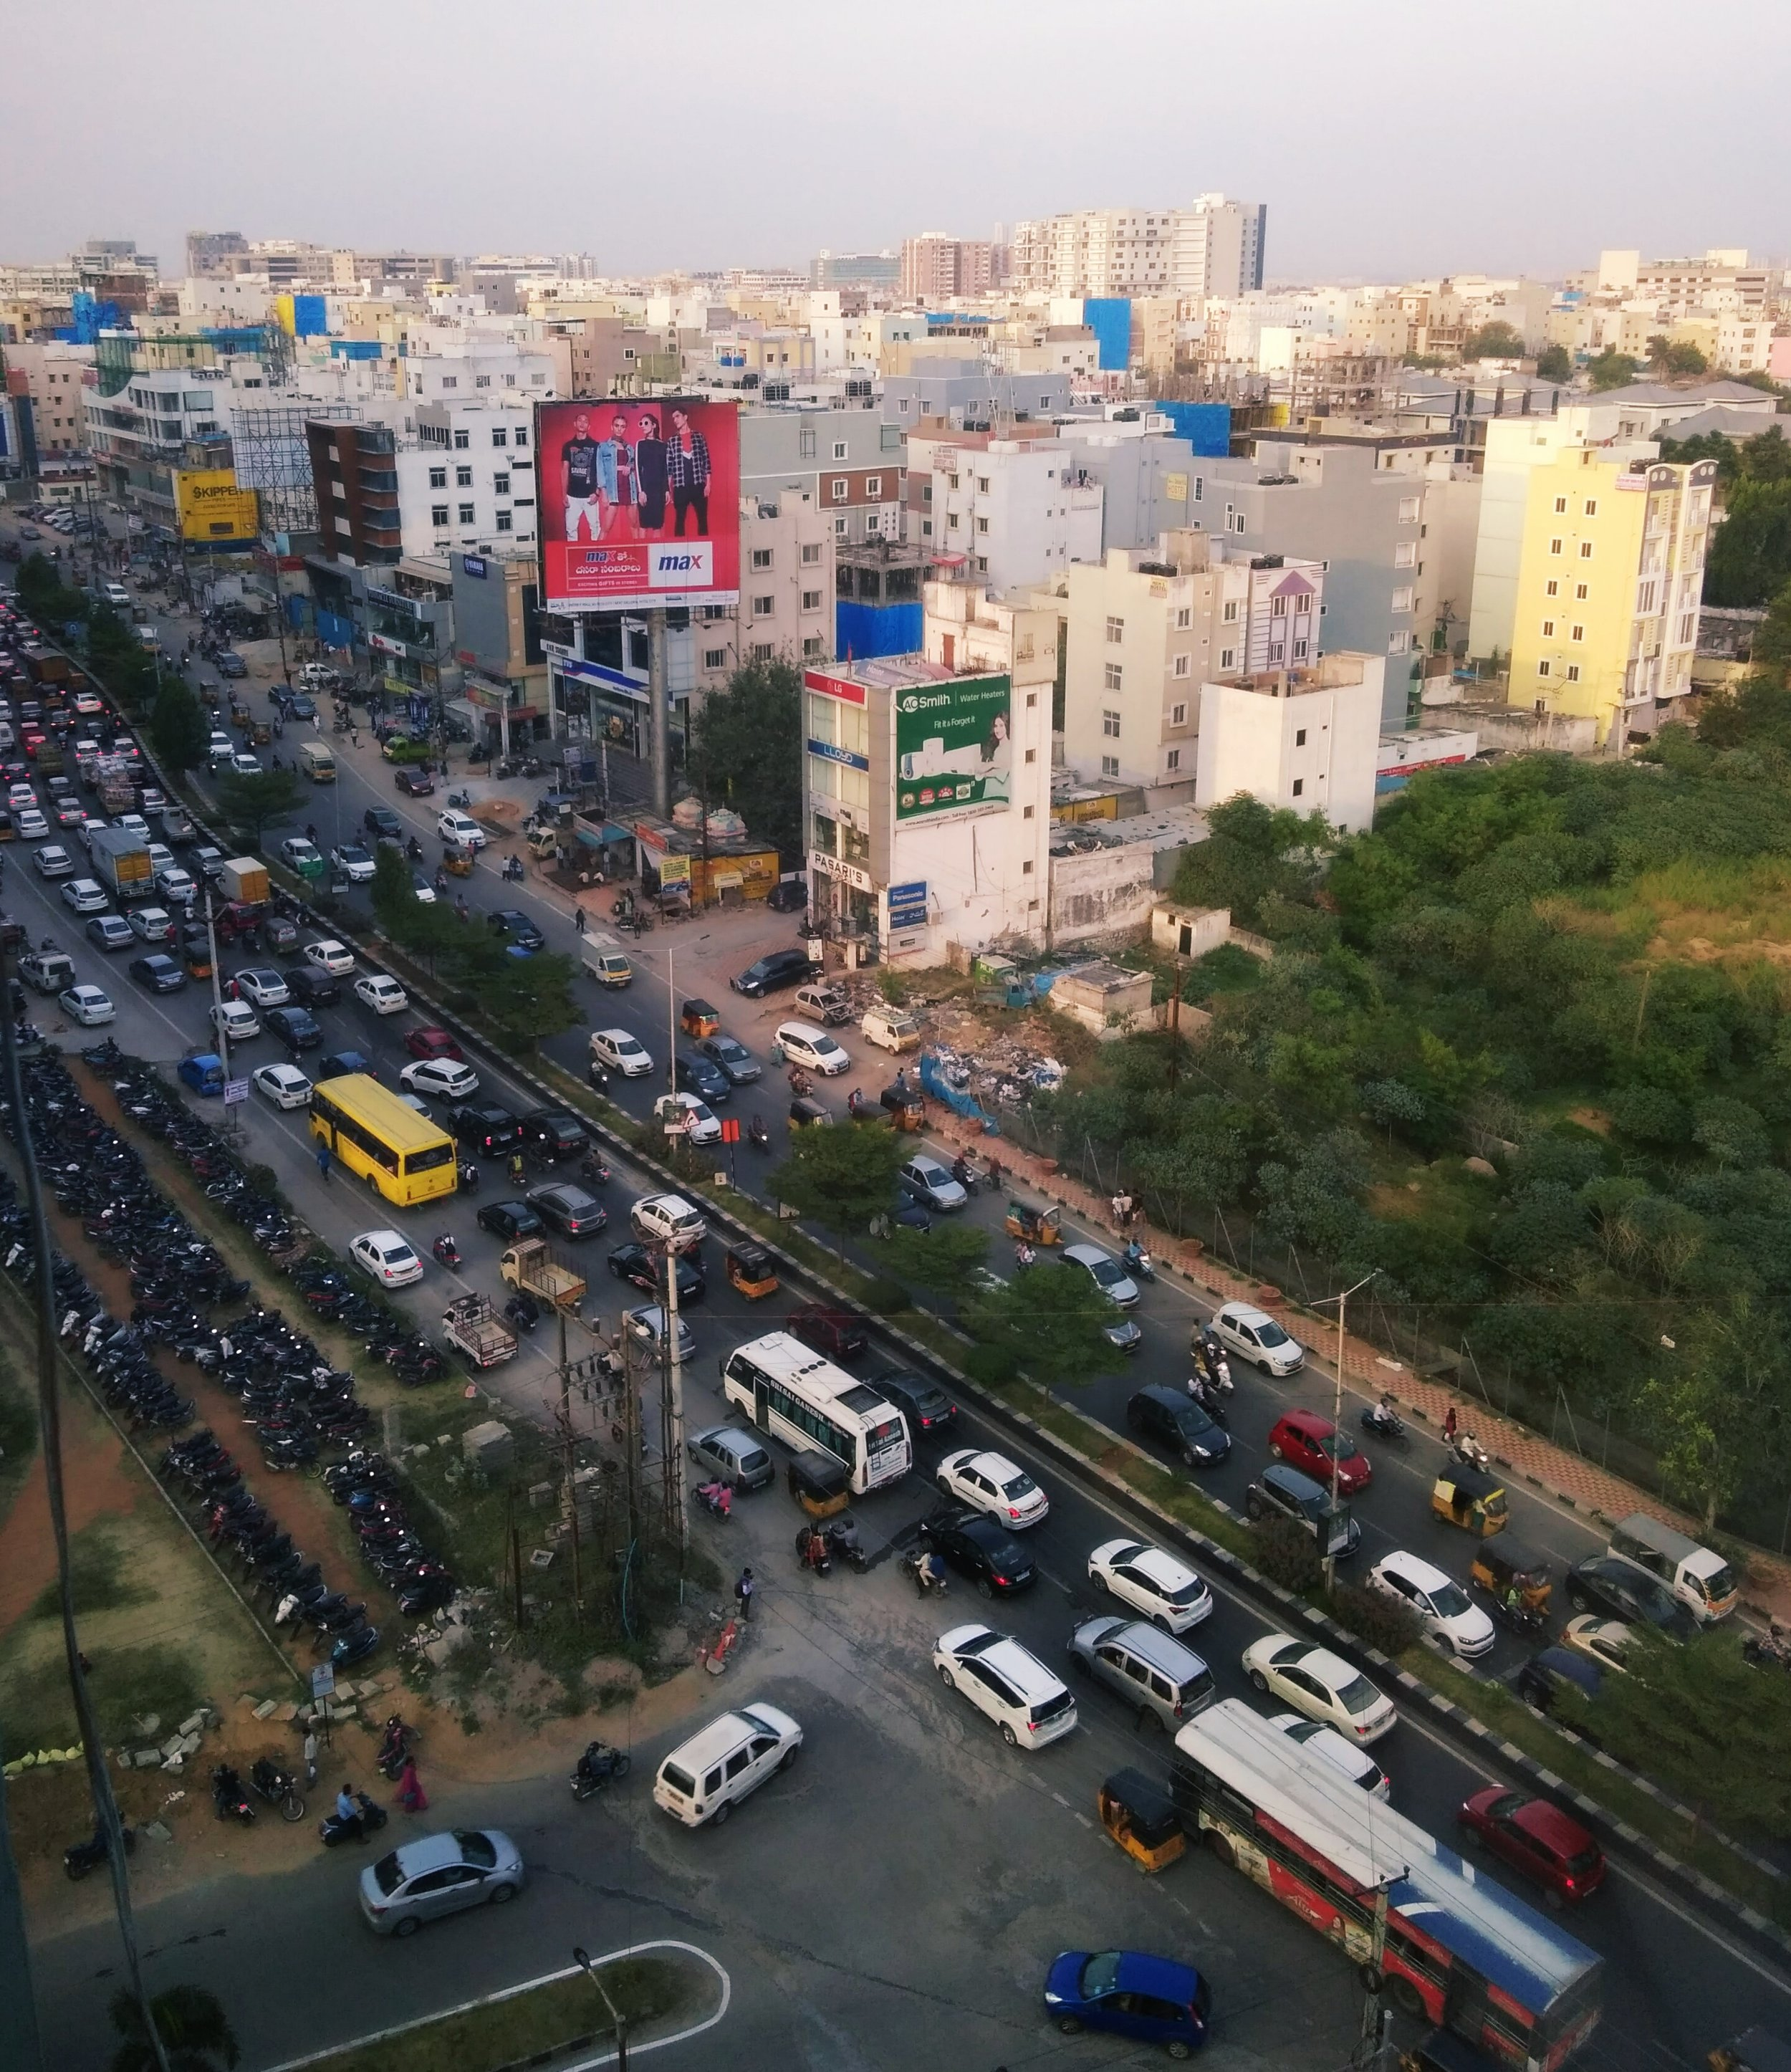 The normal traffic in Hyderabad